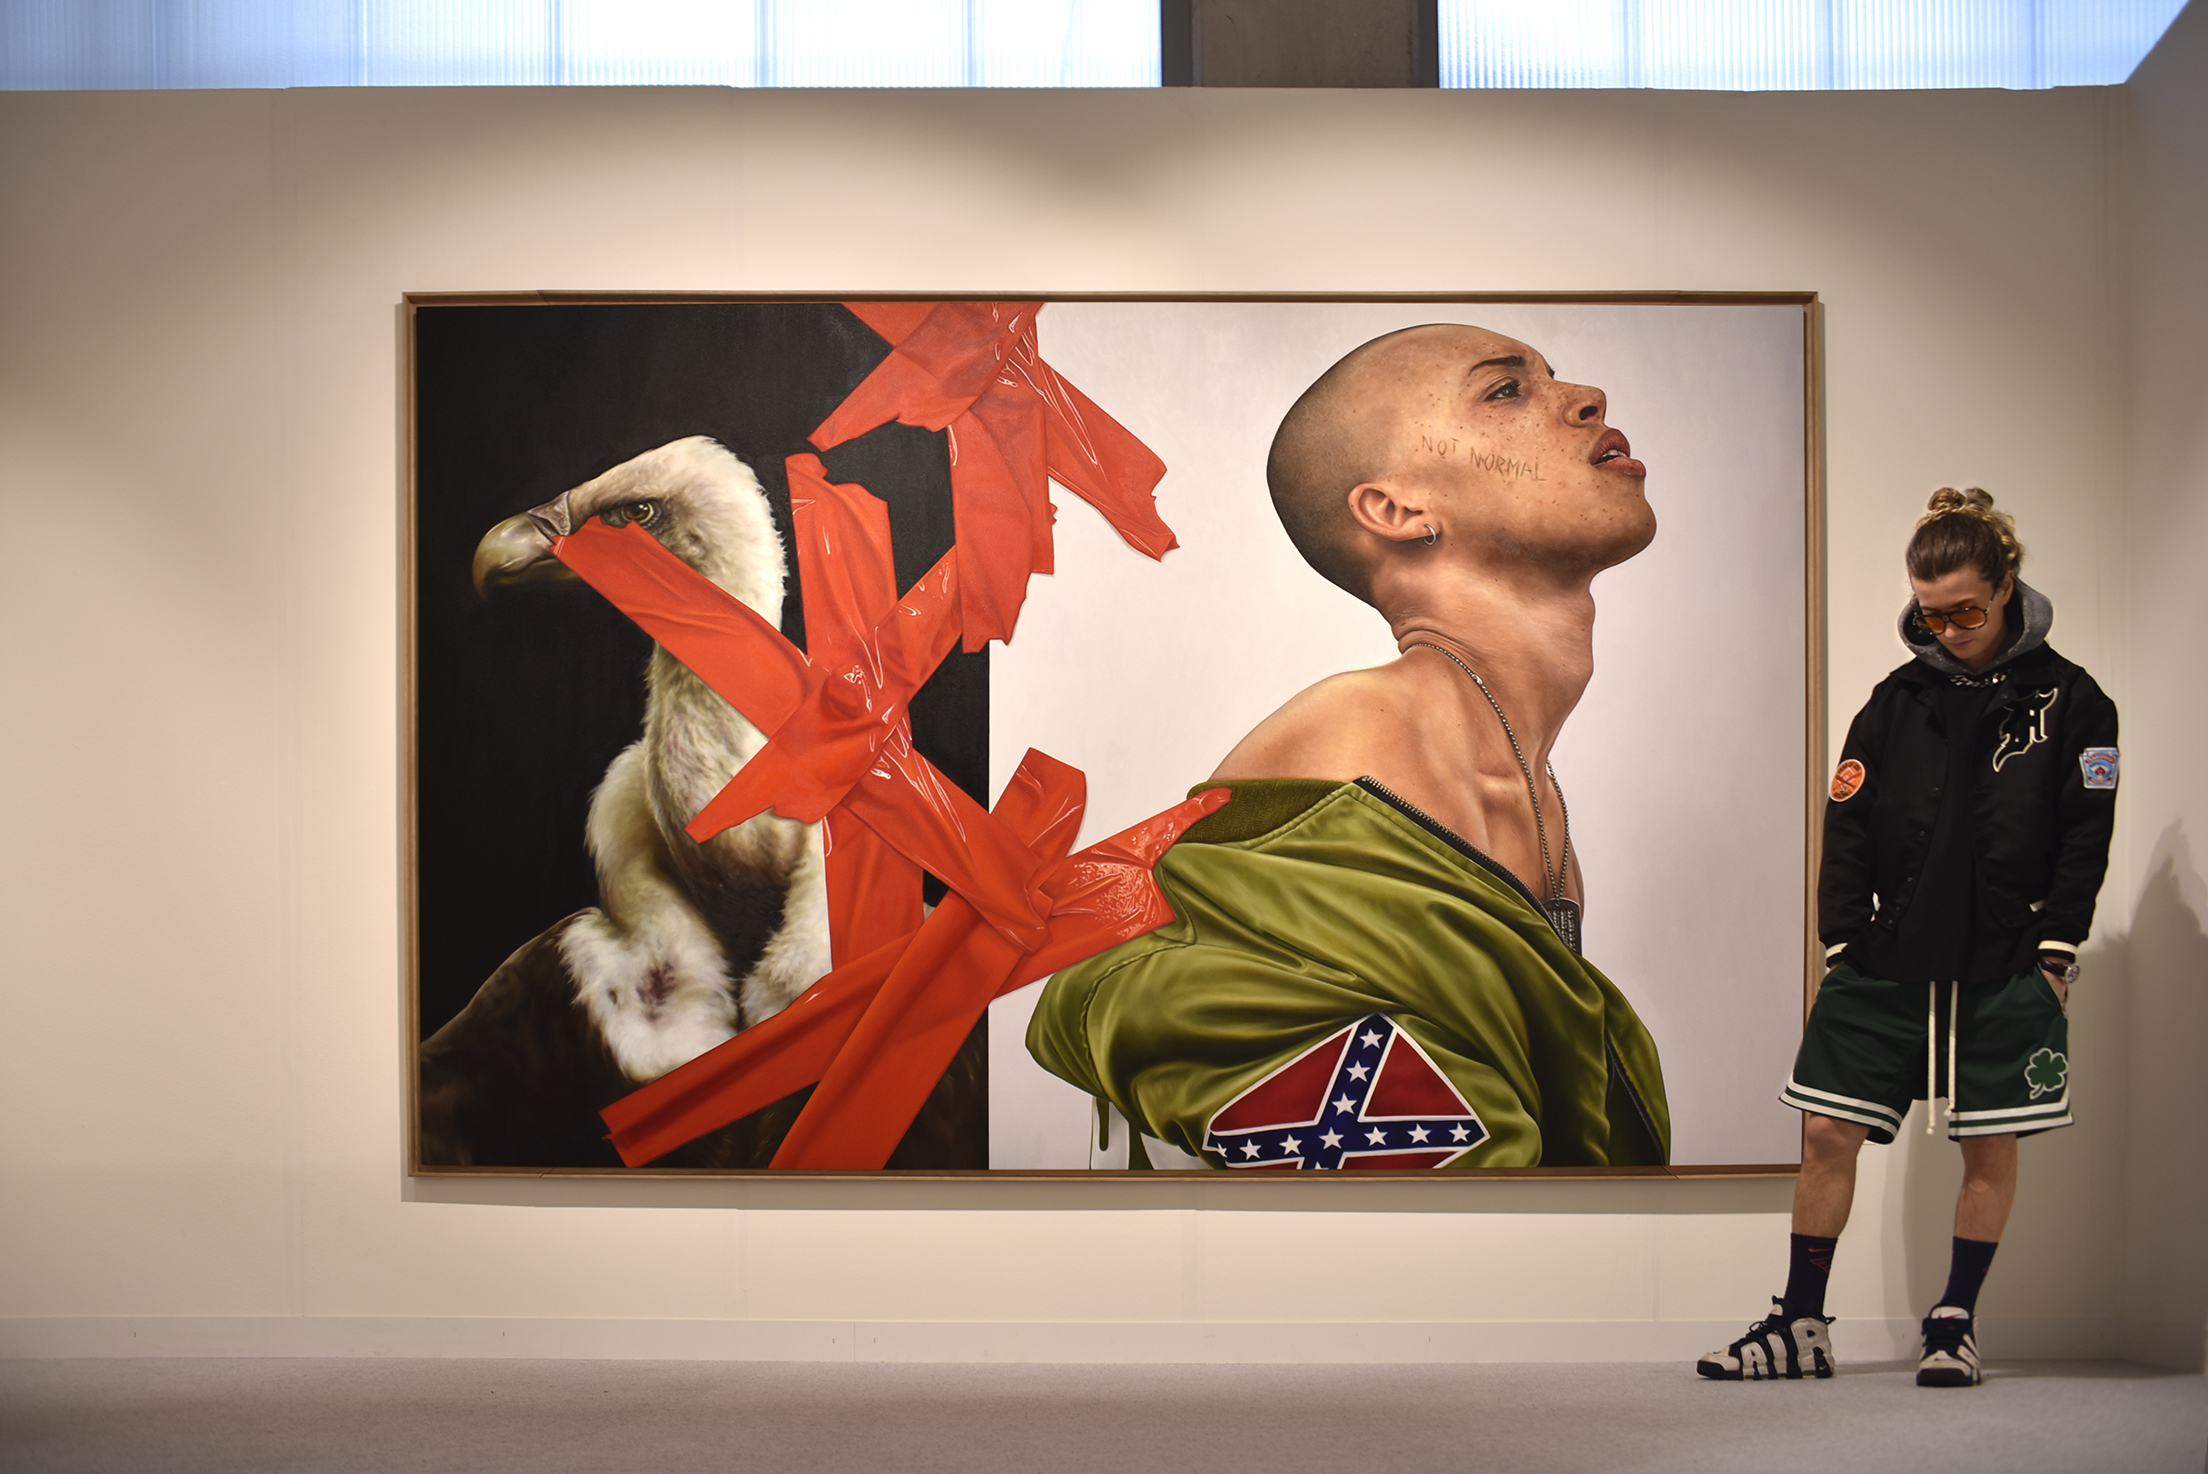 Not Normal  - Art Basel 2019 Exhibition View With The Artist - THE KID - 2019 - Oil and egg tempera on canvas - 306 x 206 cm - Institutional Collection, Switzerland ©THE KID